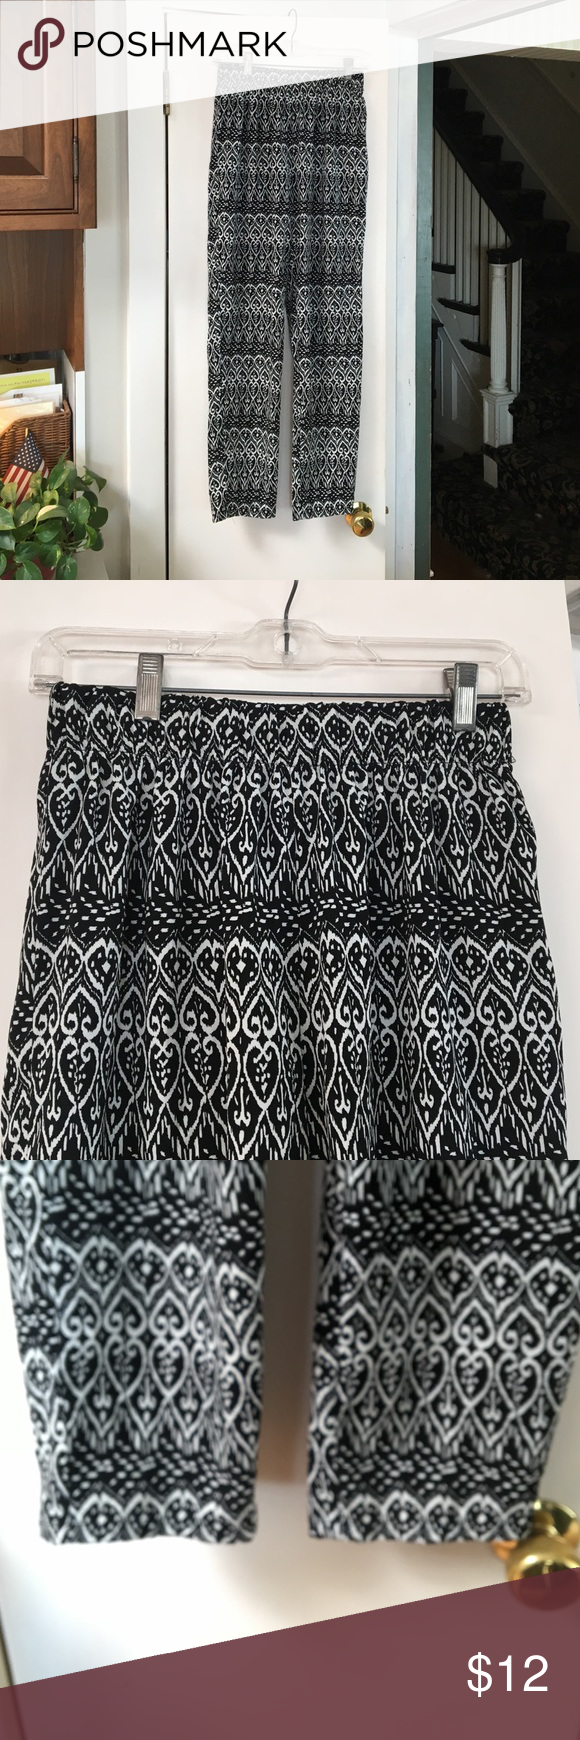 Casual pants Ambiance apparel size junior large.  Black and white print.  Elastic waist. 100%polyester. Ambiance Apparel Pants Track Pants & Joggers